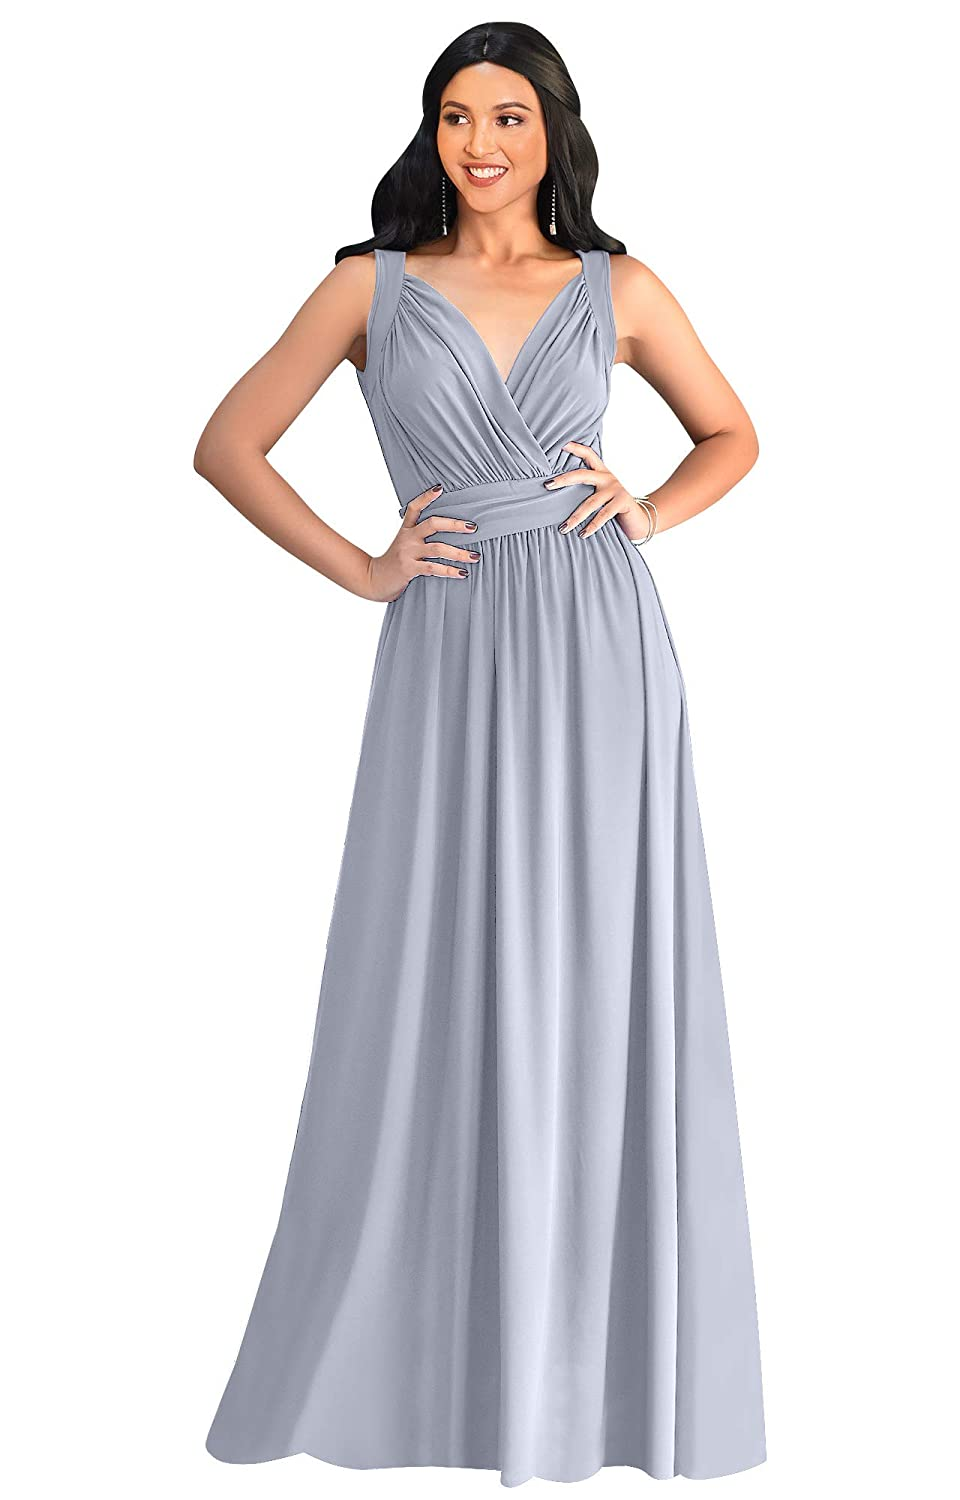 1940s Dresses | 40s Dress, Swing Dress KOH KOH Womens Long Sleeveless Flowy Bridesmaid Cocktail Evening Gown Maxi Dress $59.95 AT vintagedancer.com